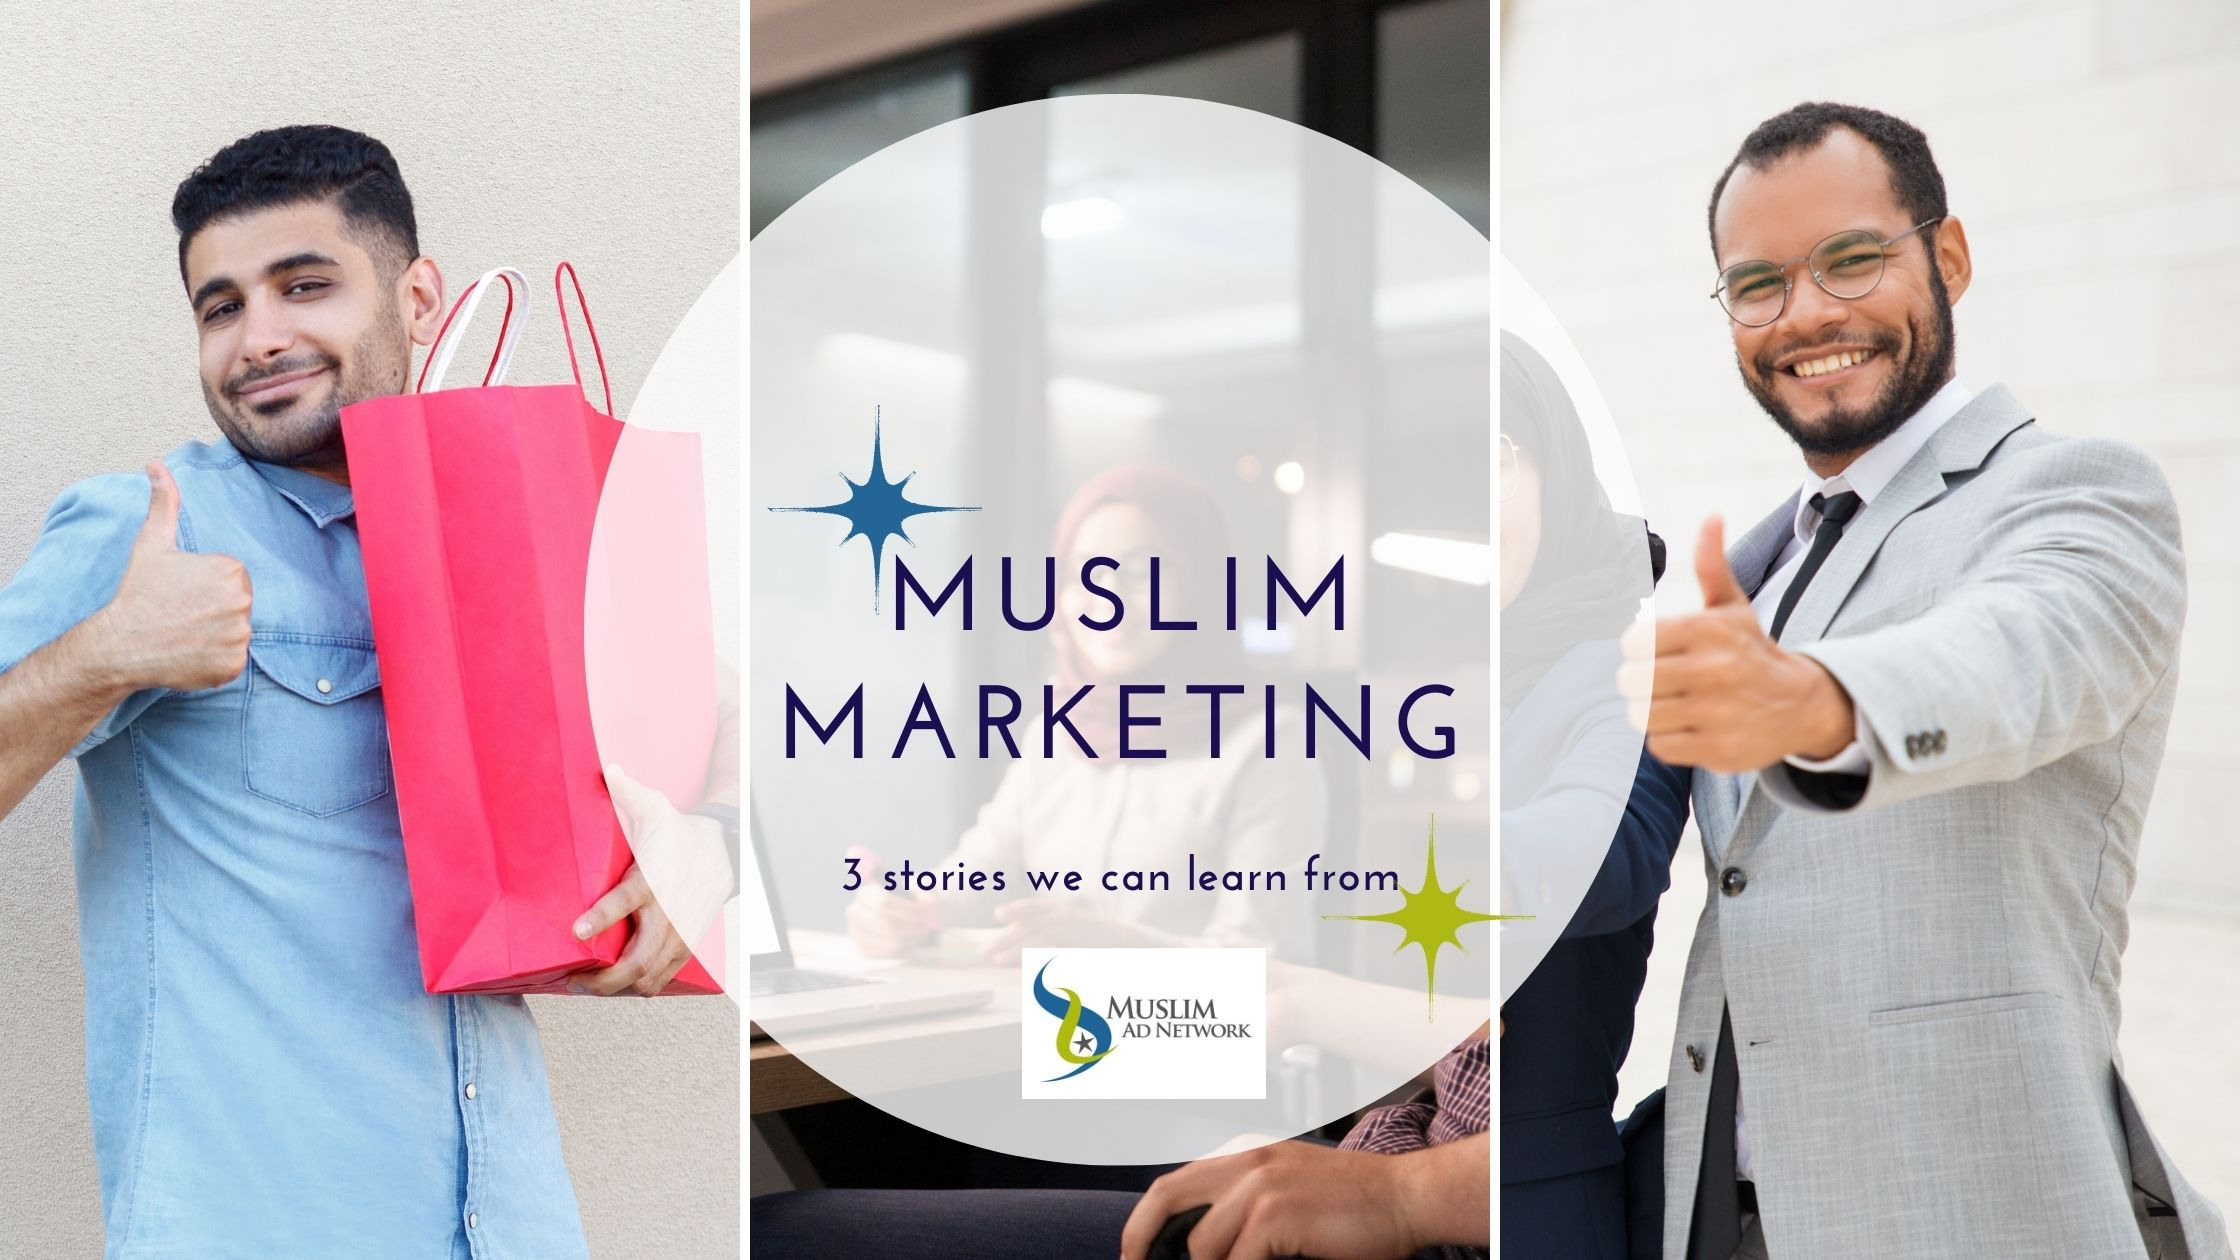 Marketing to Muslims